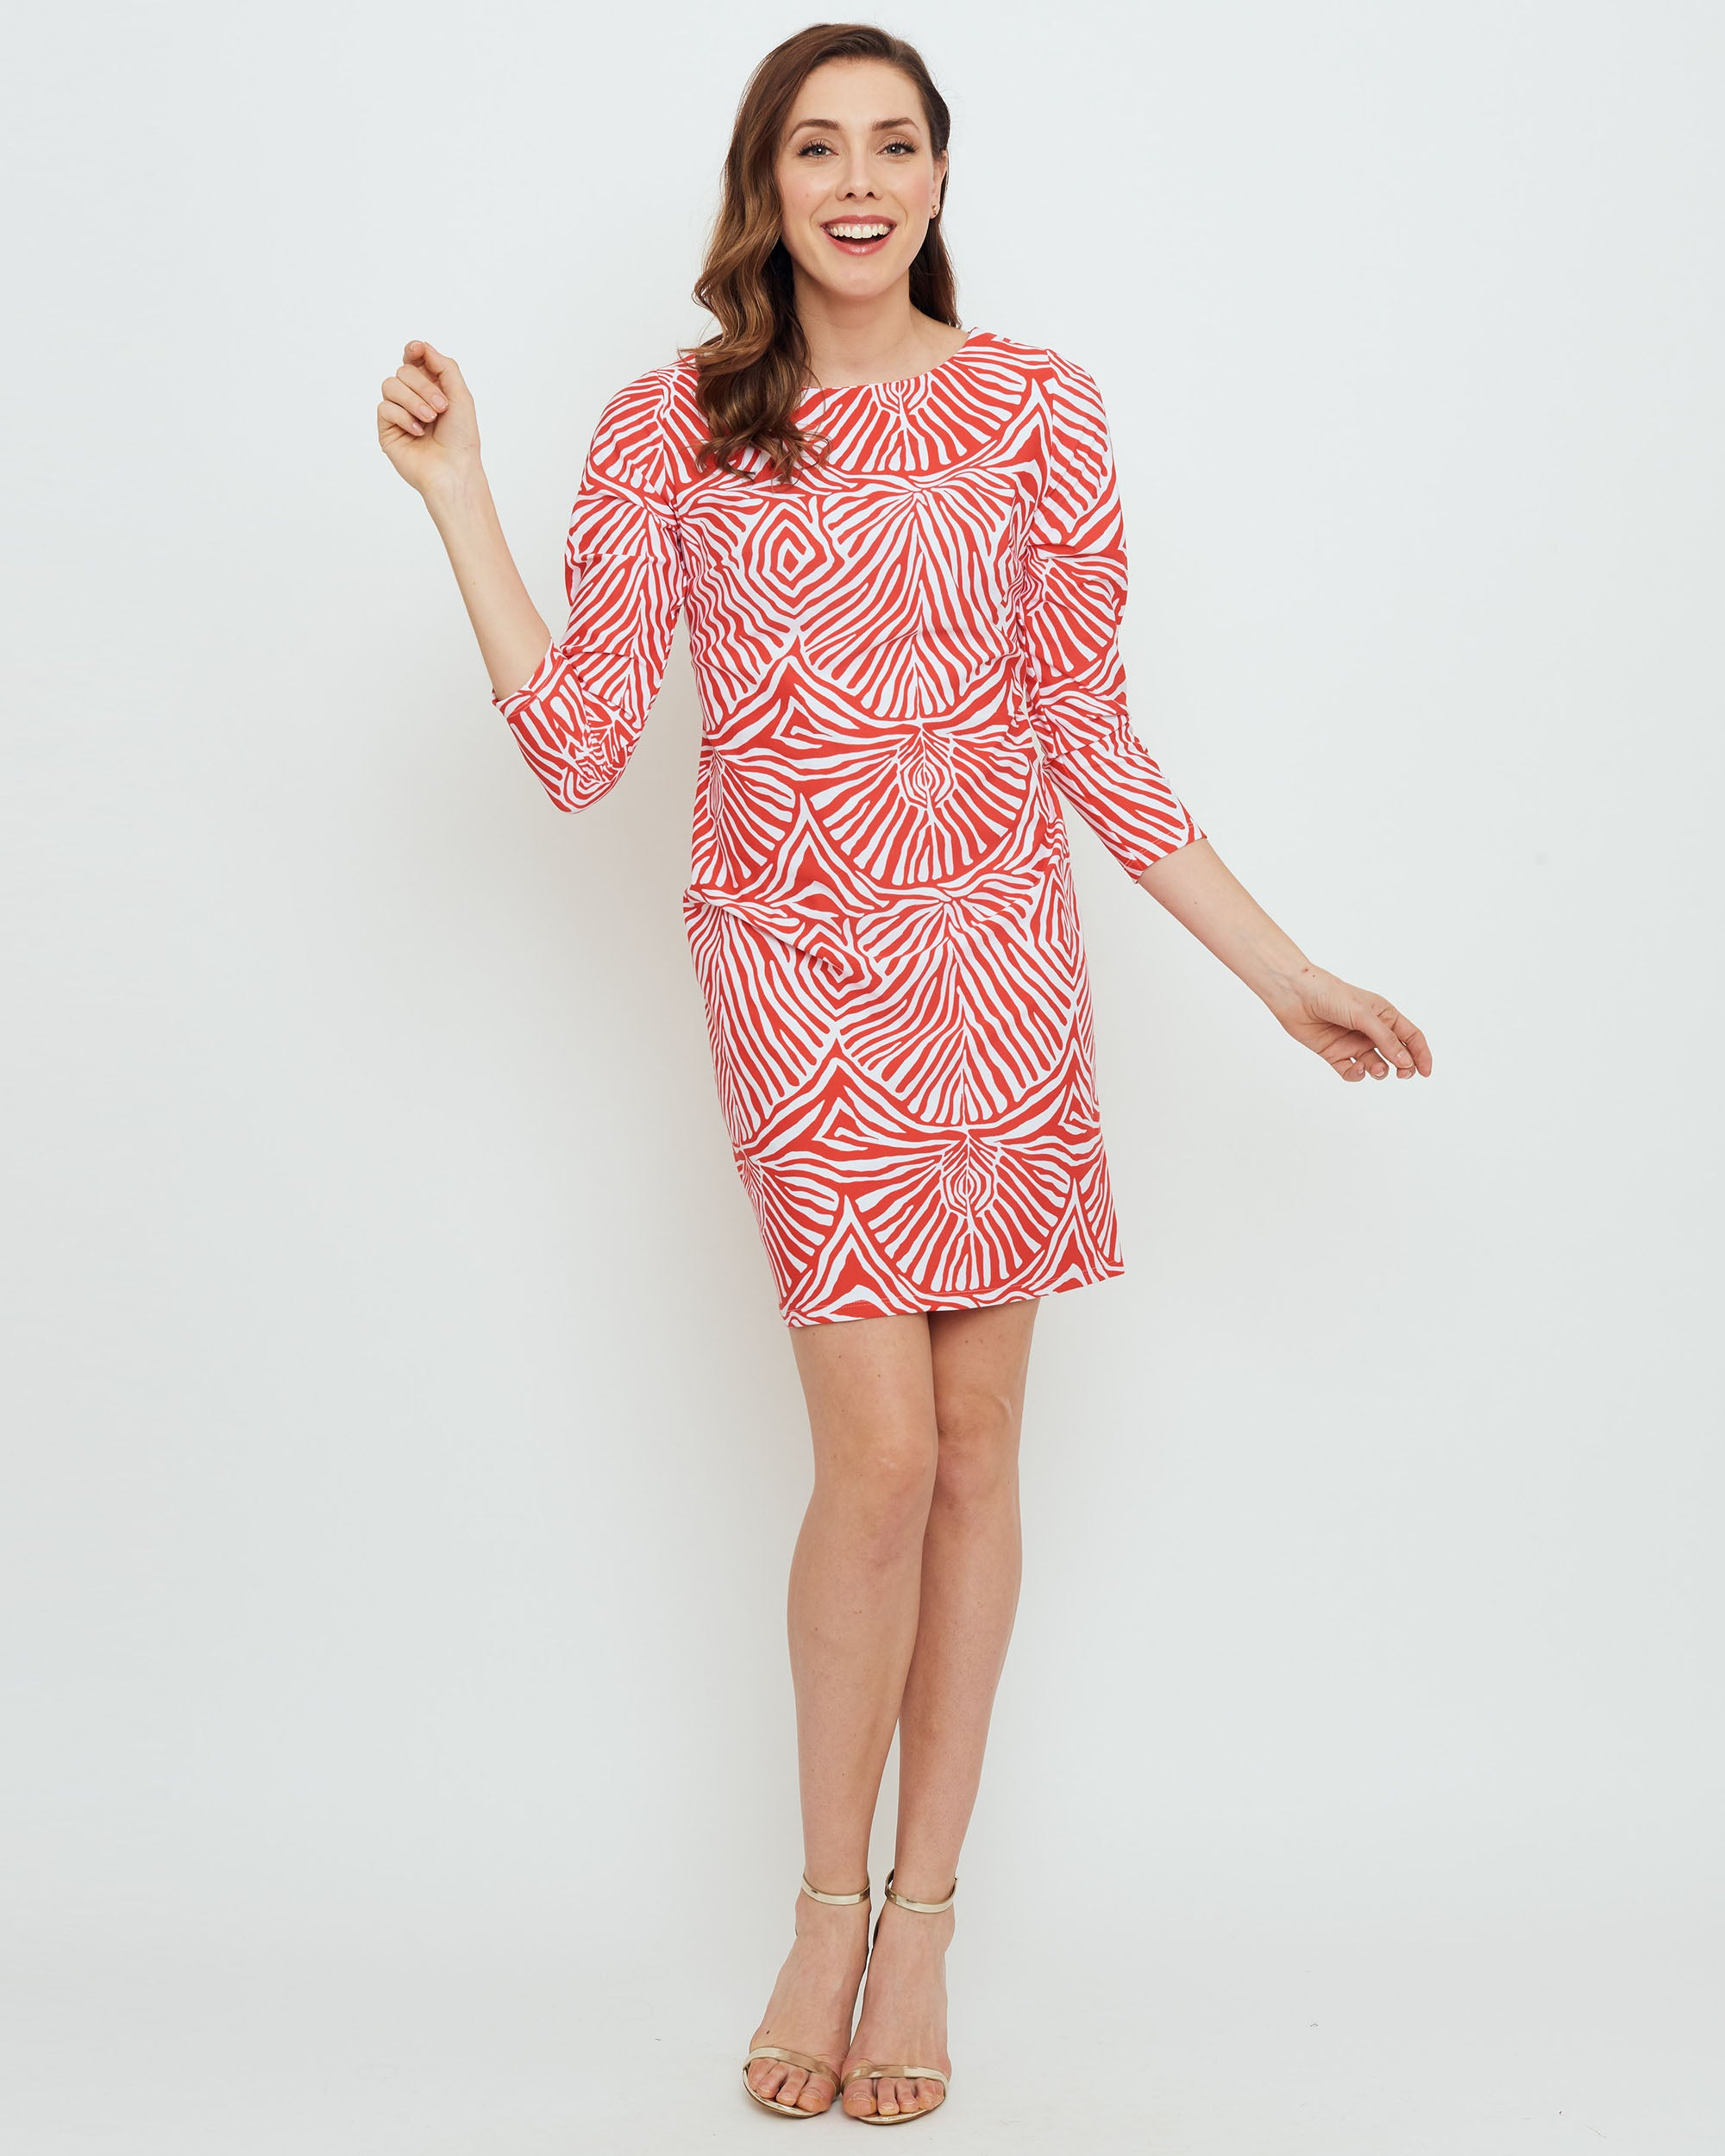 1d7d8aaeaa44 Adonara 3/4 Sleeve Boatneck Dress in Coral Safari Stripes - BO&NIC